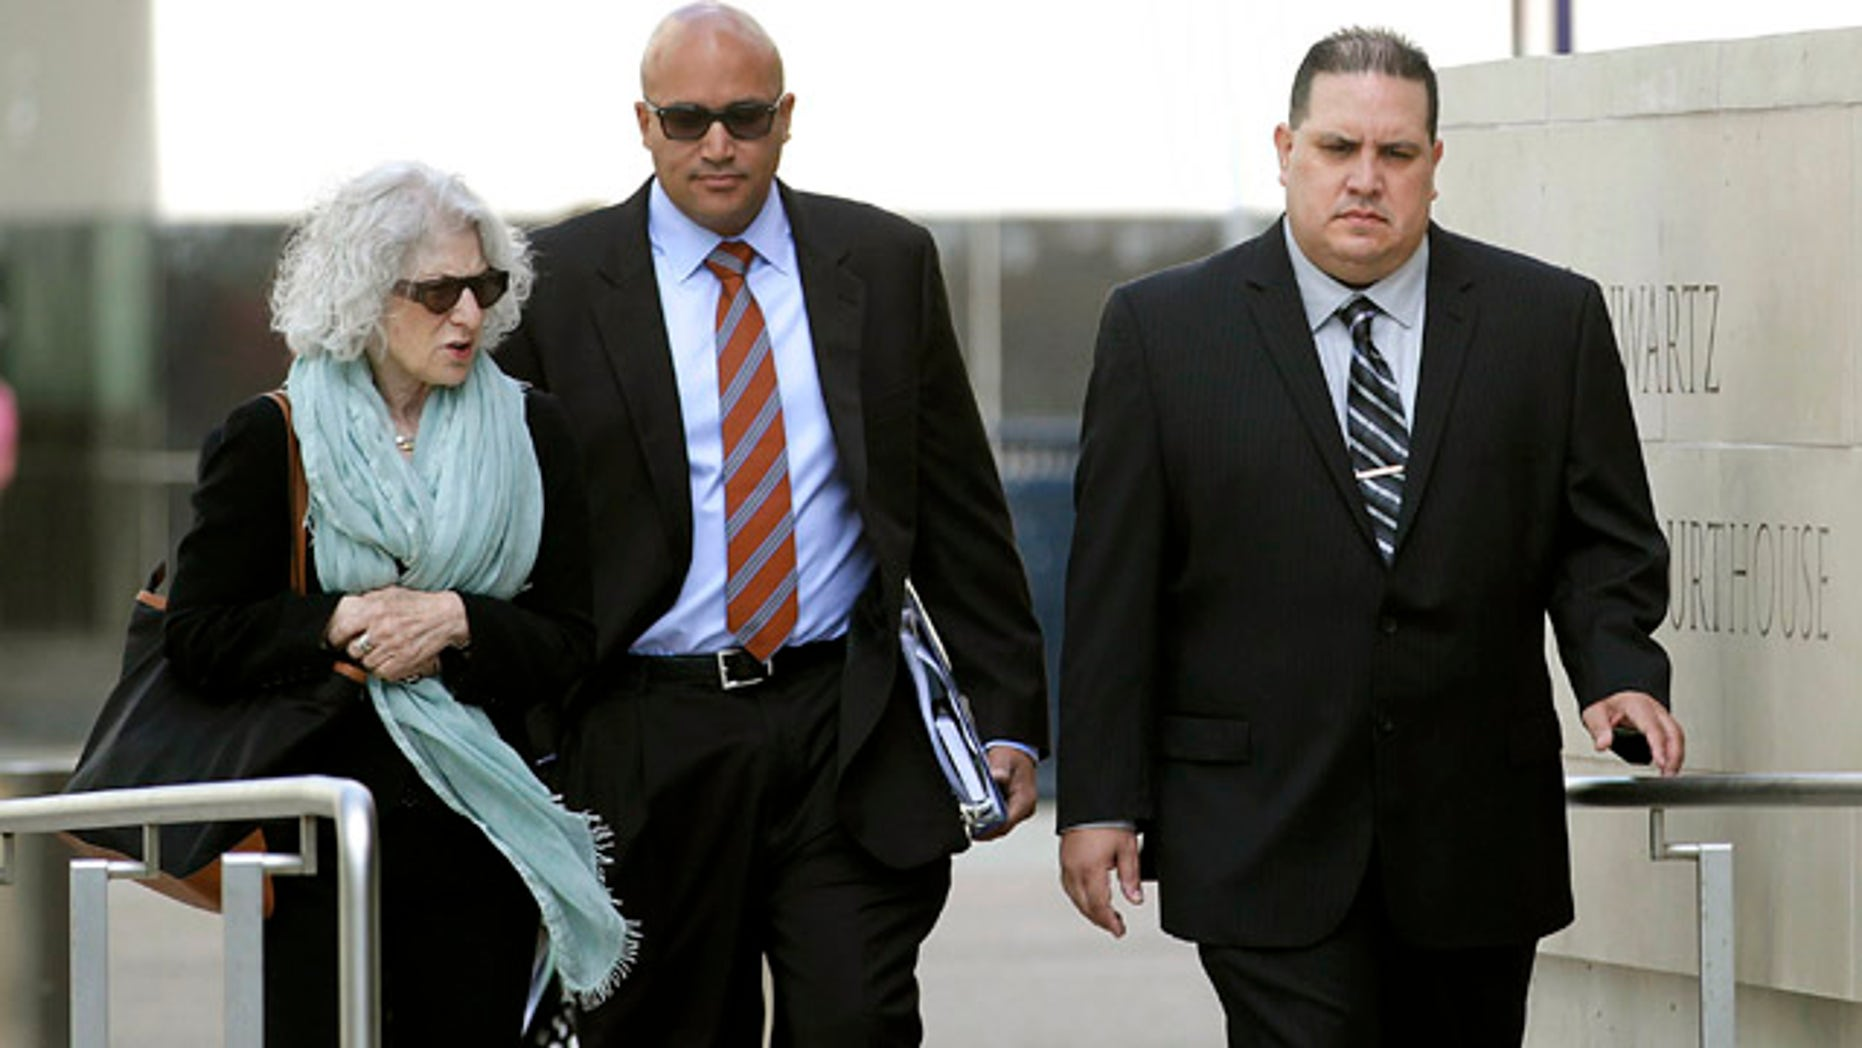 Nov. 20, 2013: Navy Cmdr. Jose Luis Sanchez, right, walks with unidentified individuals in San Diego. Sanchez pleaded guilty Tuesday in a massive bribery scheme involving a longtime military contractor in Asia who allegedly offered luxury travel, prostitutes and other bribes to Navy officers in exchange for confidential information. (AP Photo/U-T San Diego, John Gastaldo )